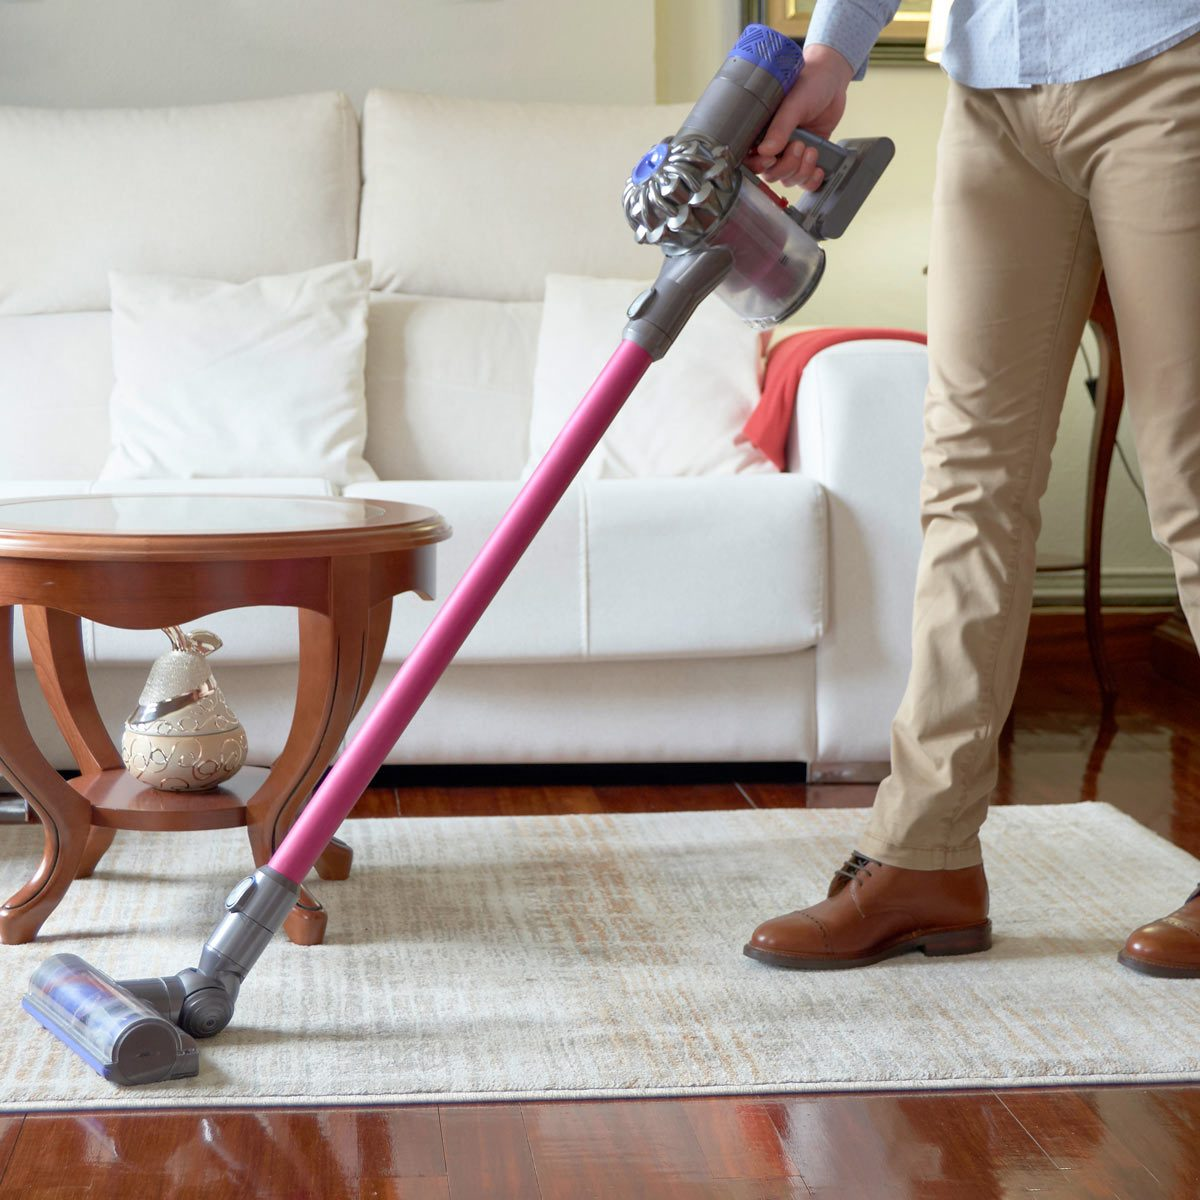 Man-running-a-cordless-vacuum-cleaner-across-the-living-room-carpet